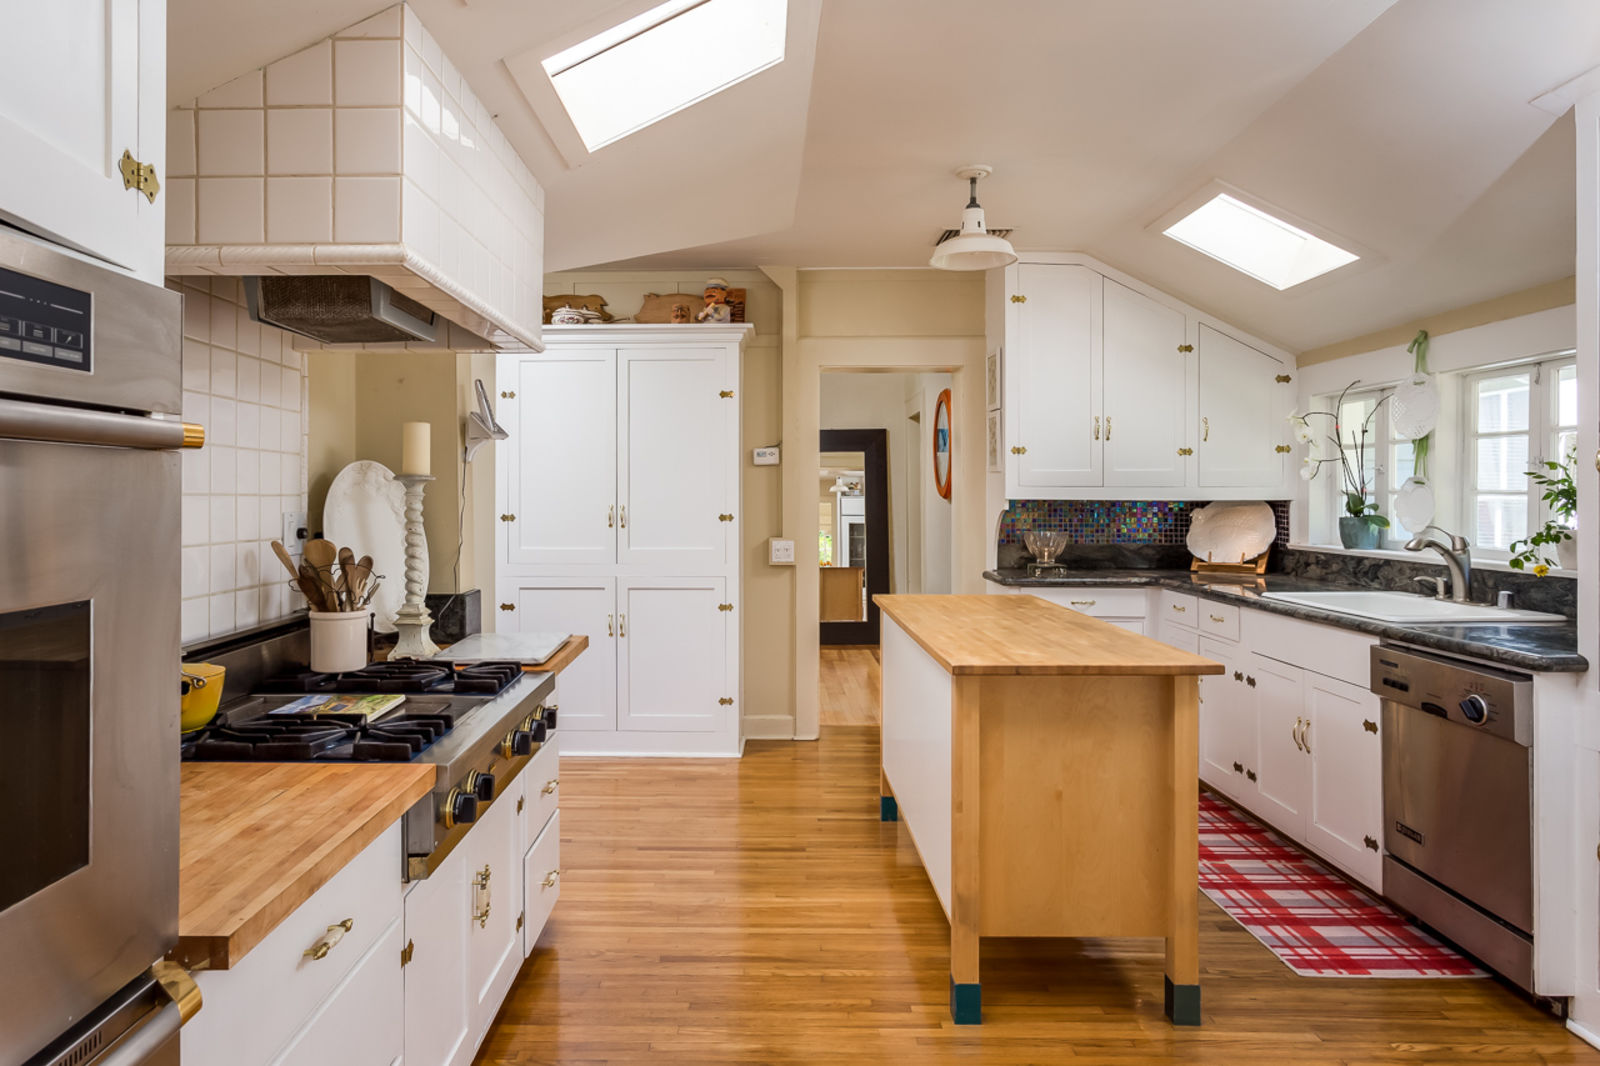 Charming Gourmet kitchen in this Adobe Home in Valley Center CA For Sale